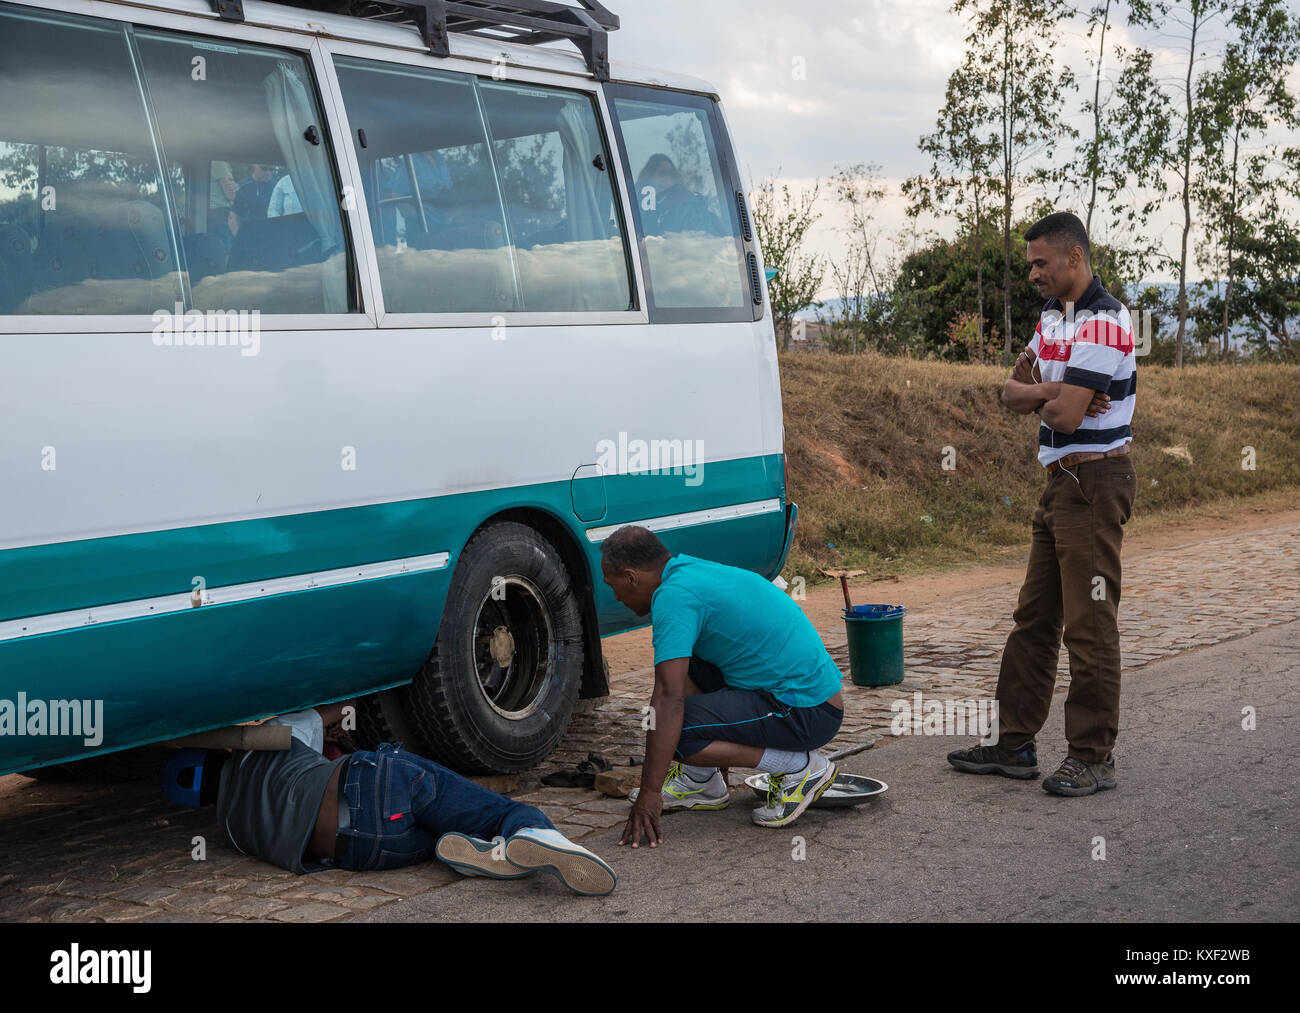 A man is under a minibus, trying to fix a flat tire, on the side of road. Madagascar, Africa. - Stock Image